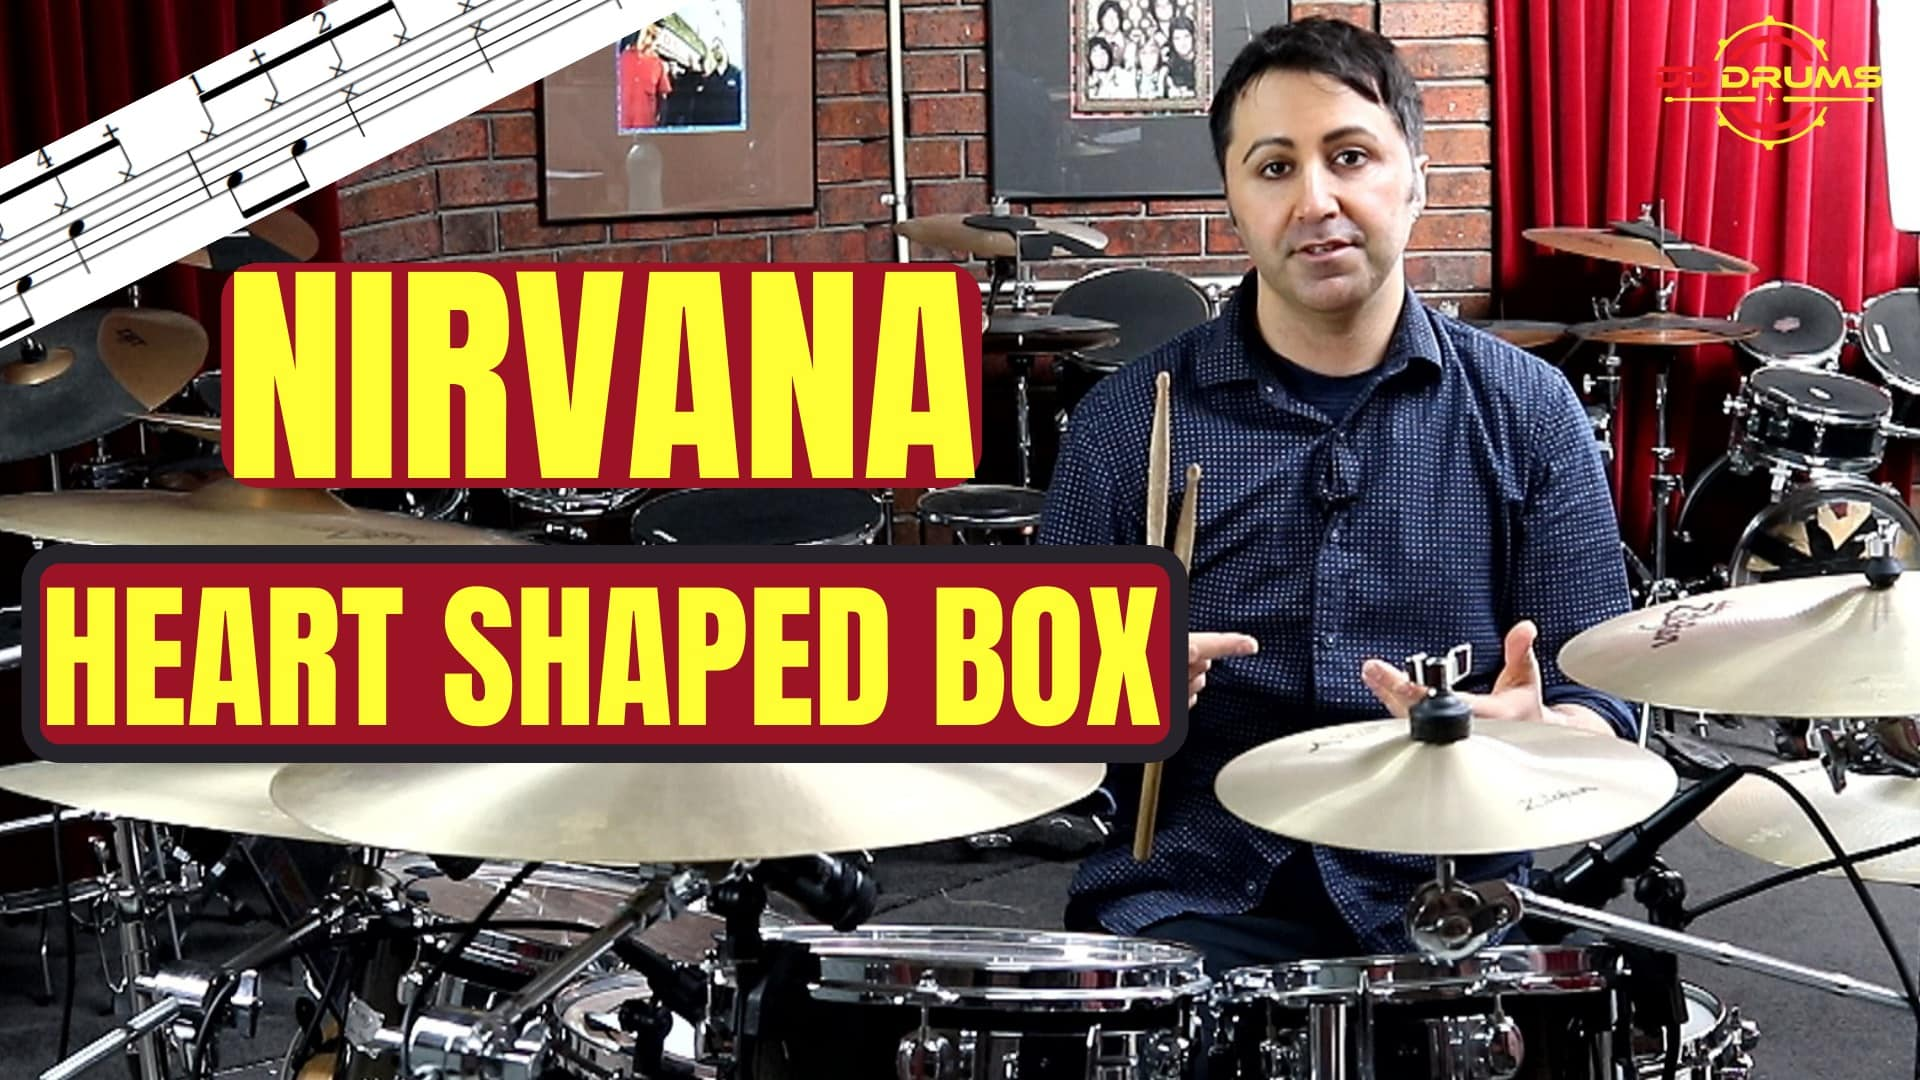 How to play 'Heart Shaped Box' by Nirvana on Drums – Drum Lesson